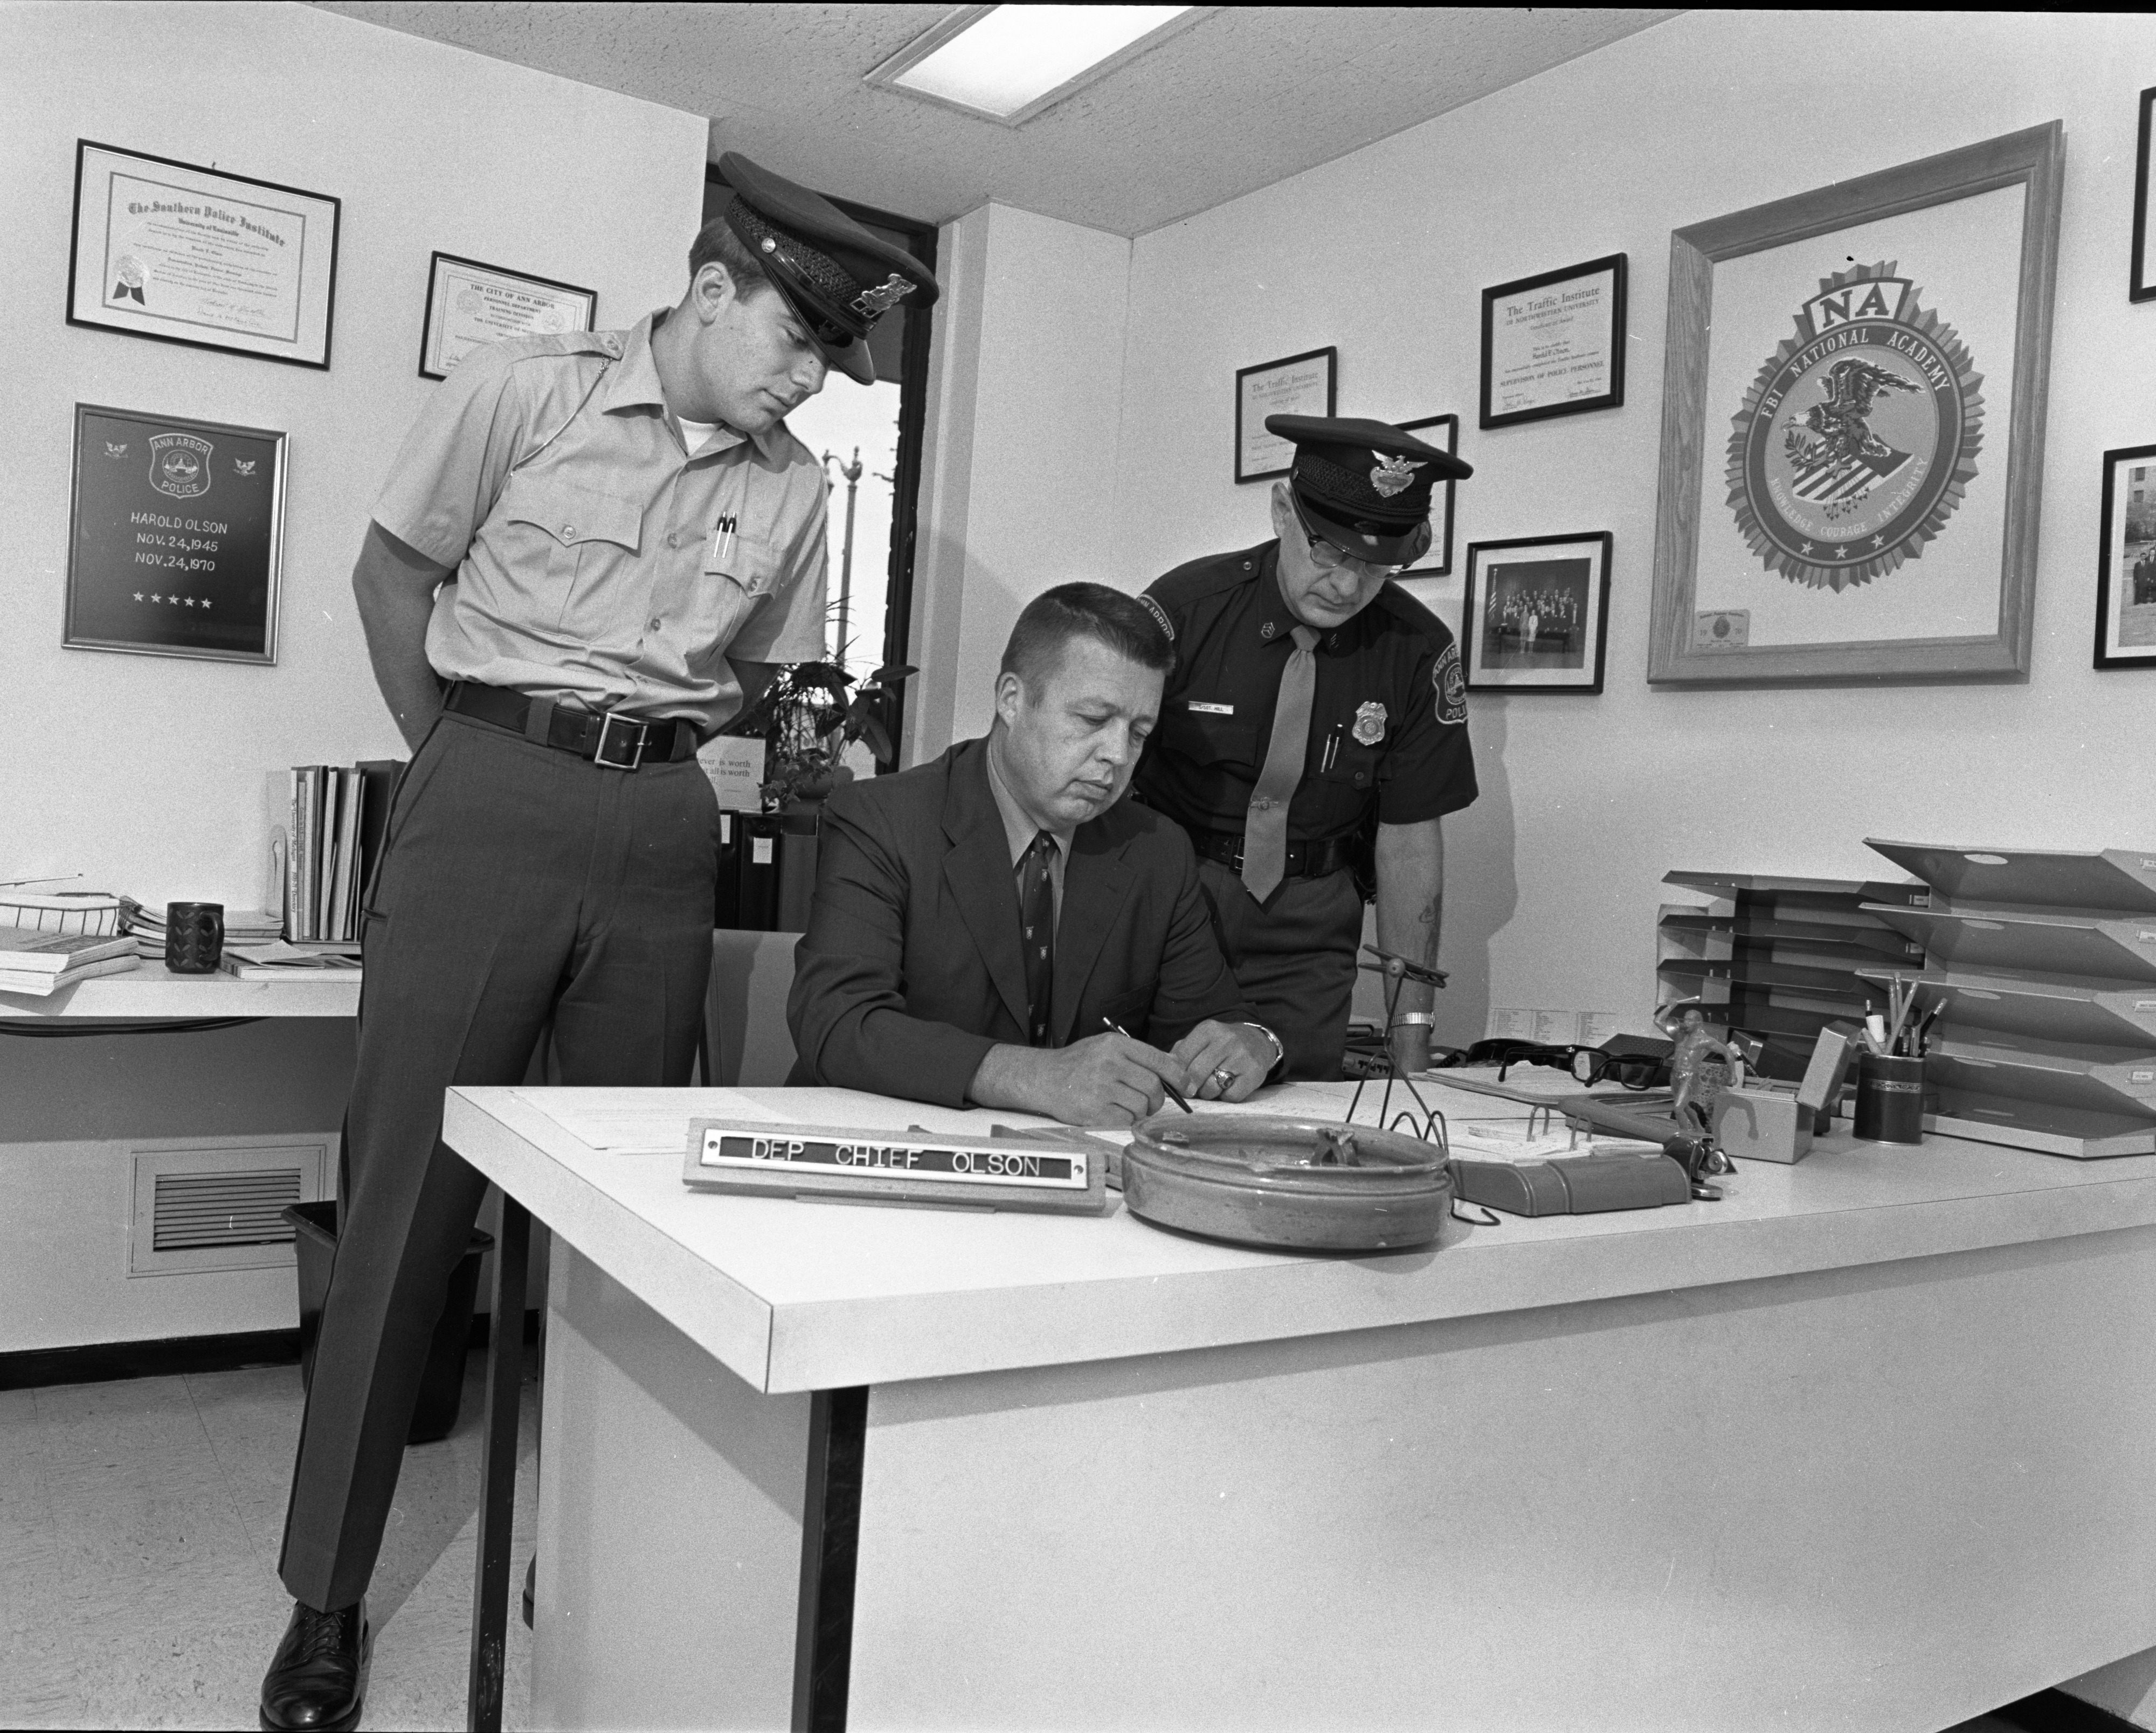 Ann Arbor Police Department First Father-Son Combination, August 1971 image